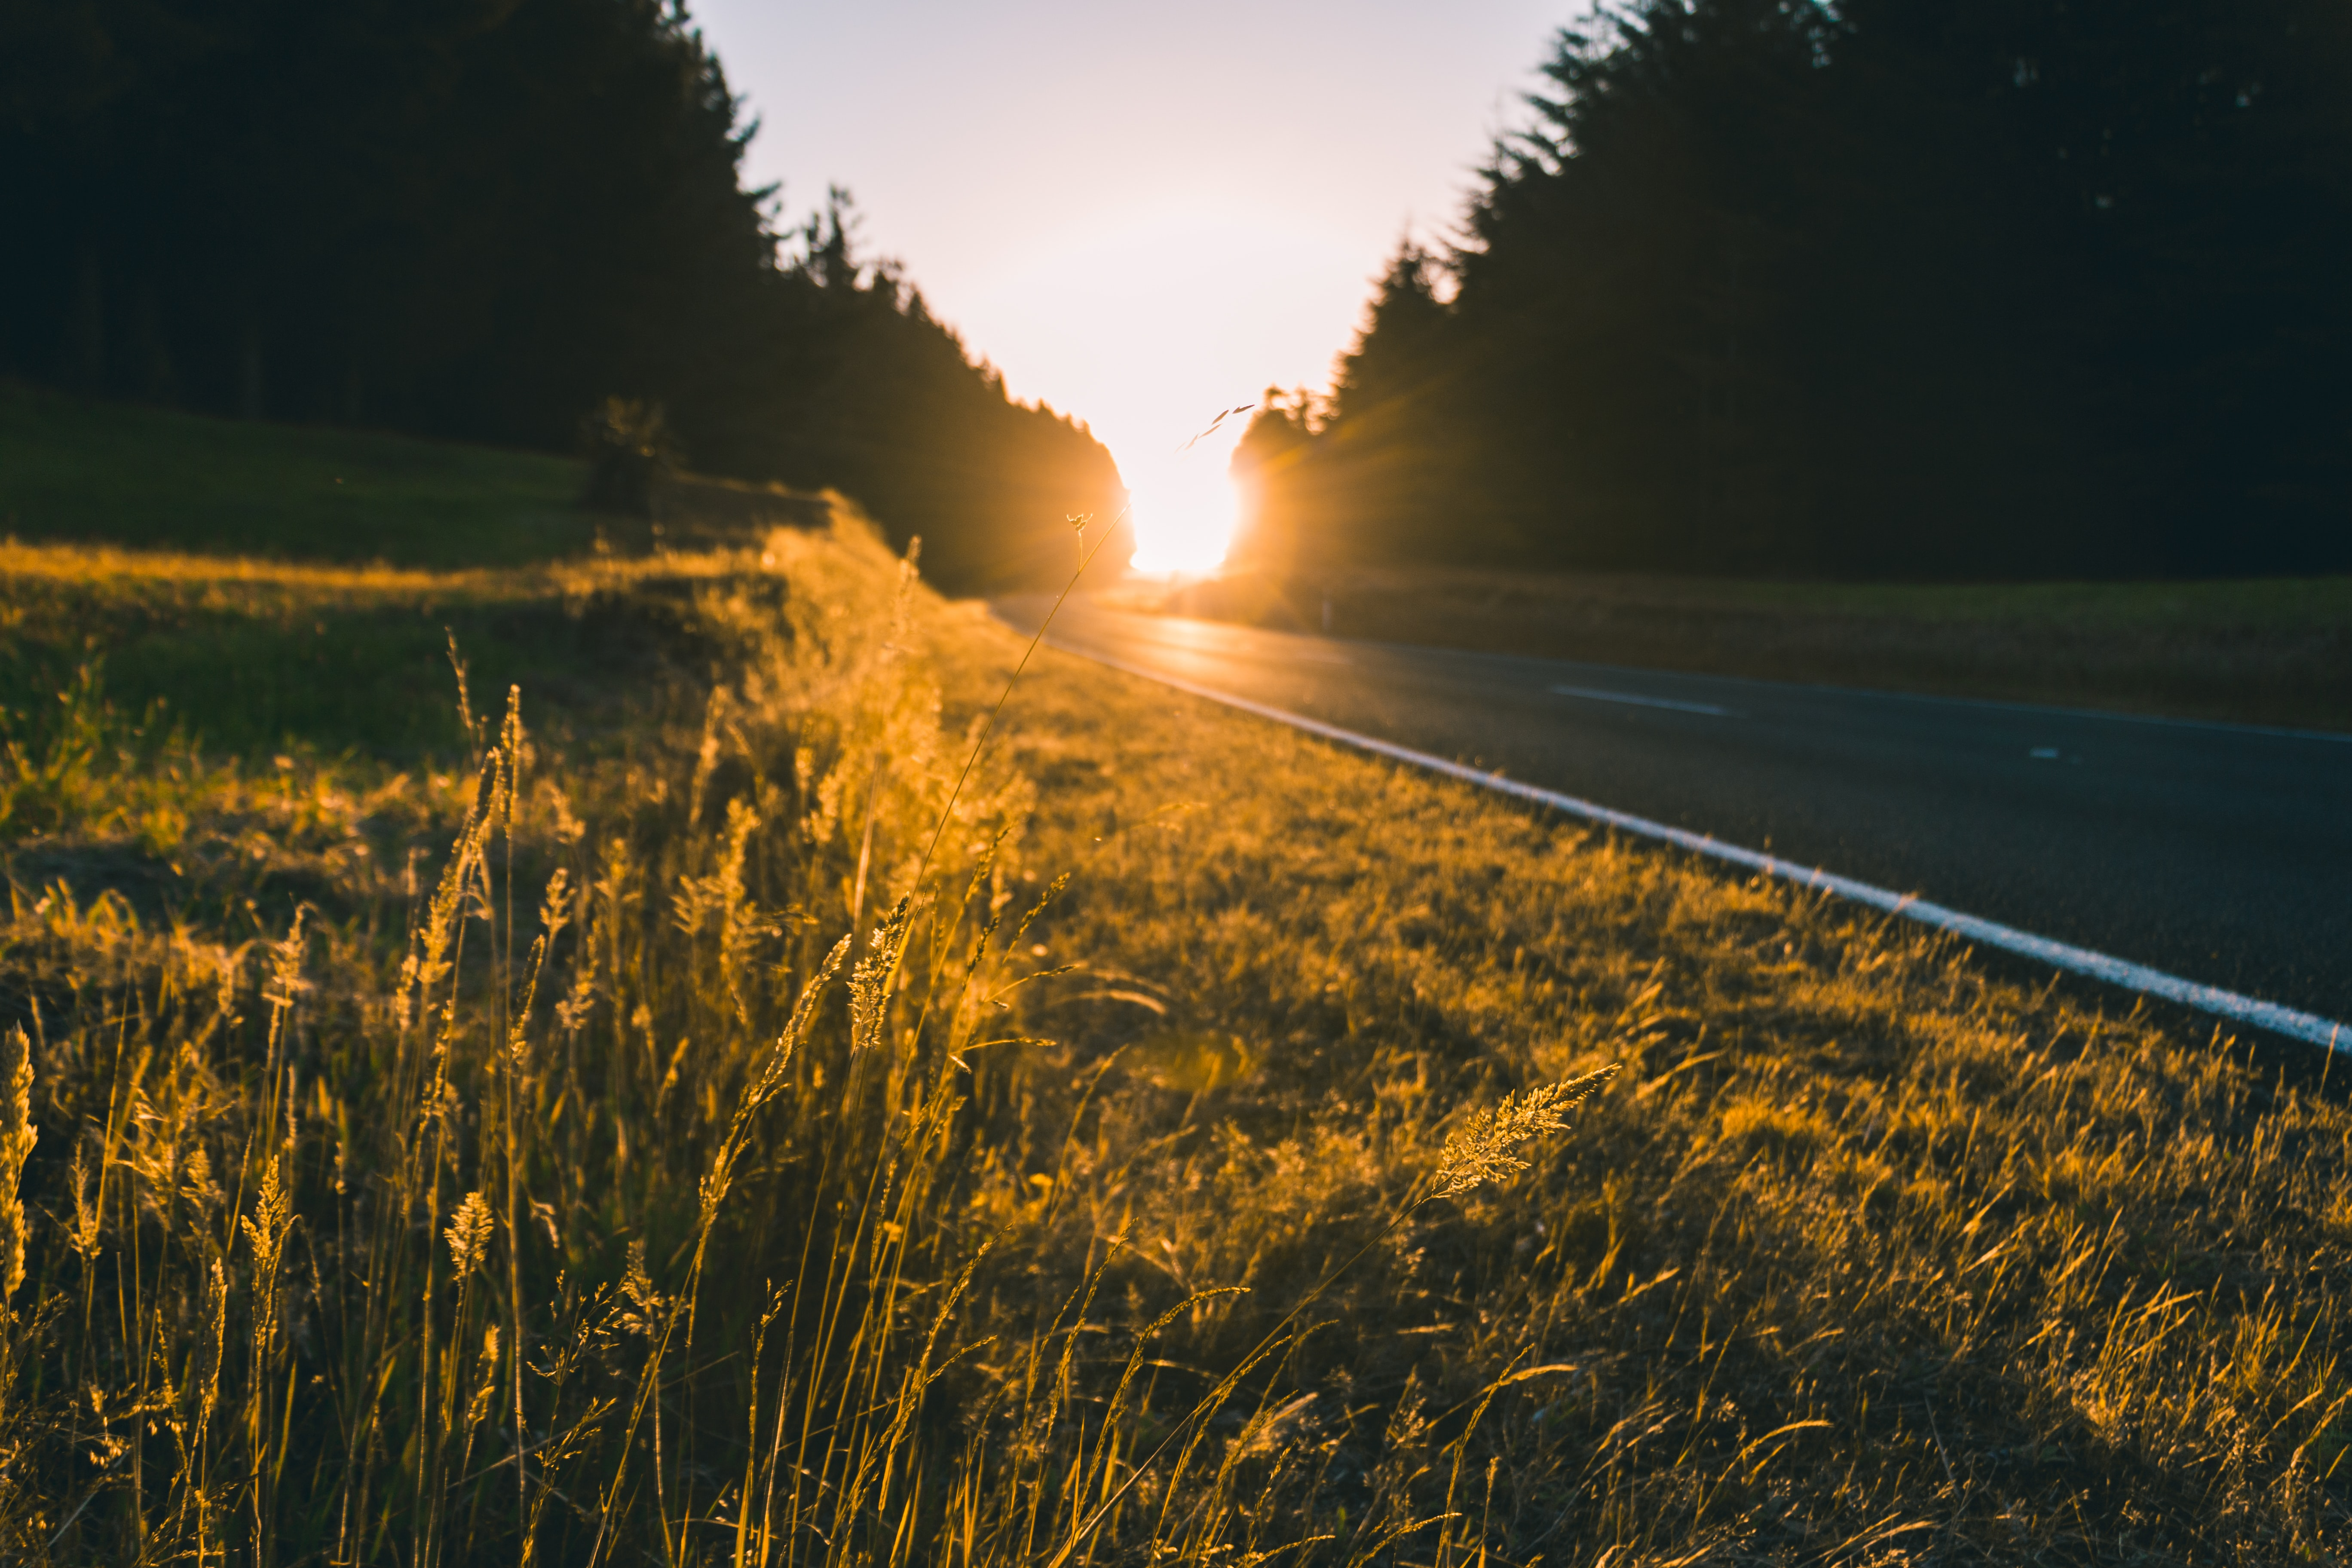 A road surrounded by long grass in Tongariro Holiday Park during golden hour